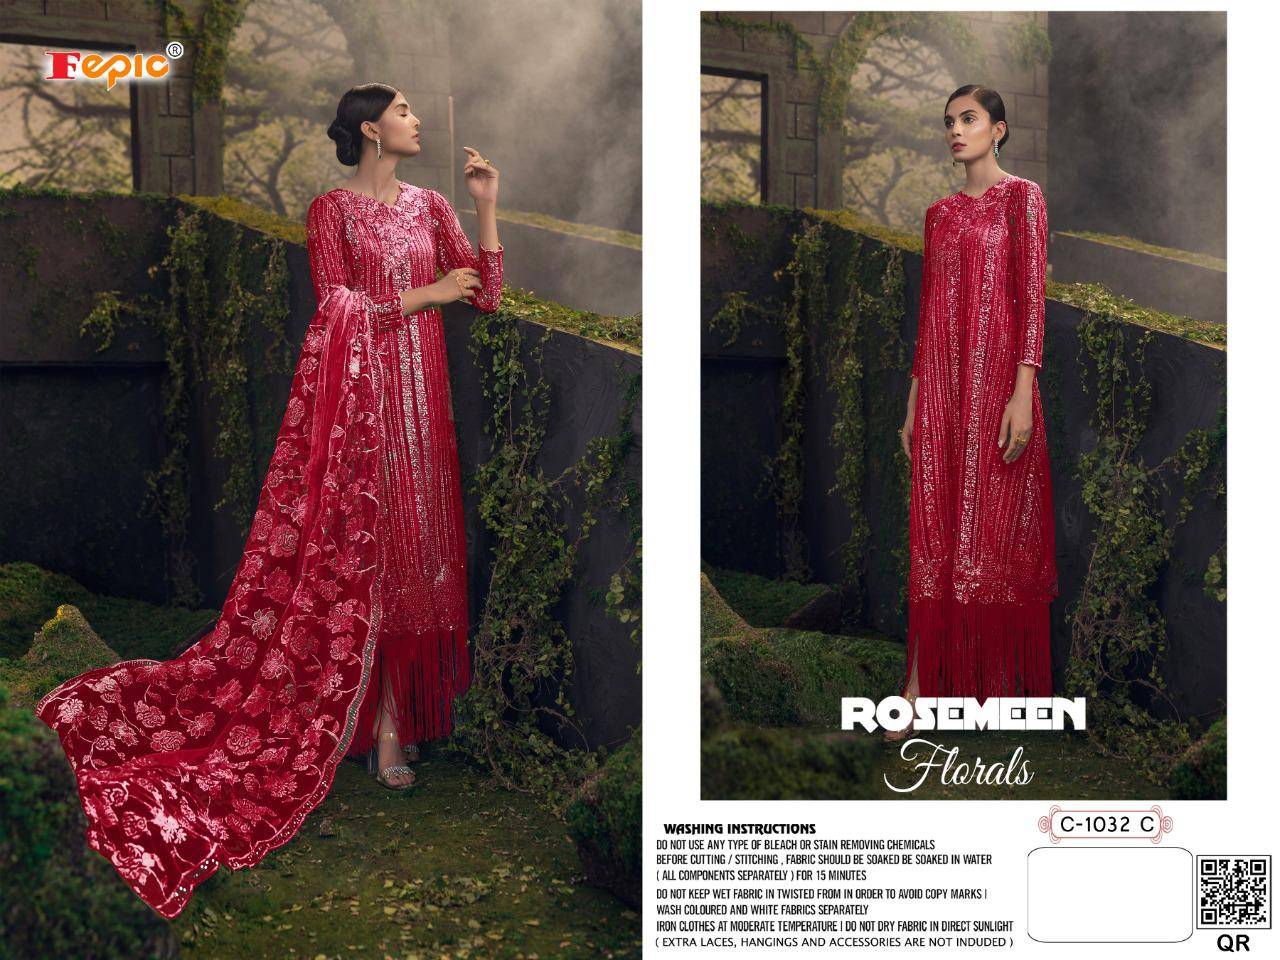 Fepic Rosemeen Florals Net Heavy Embroidery Work Suits Wholesale